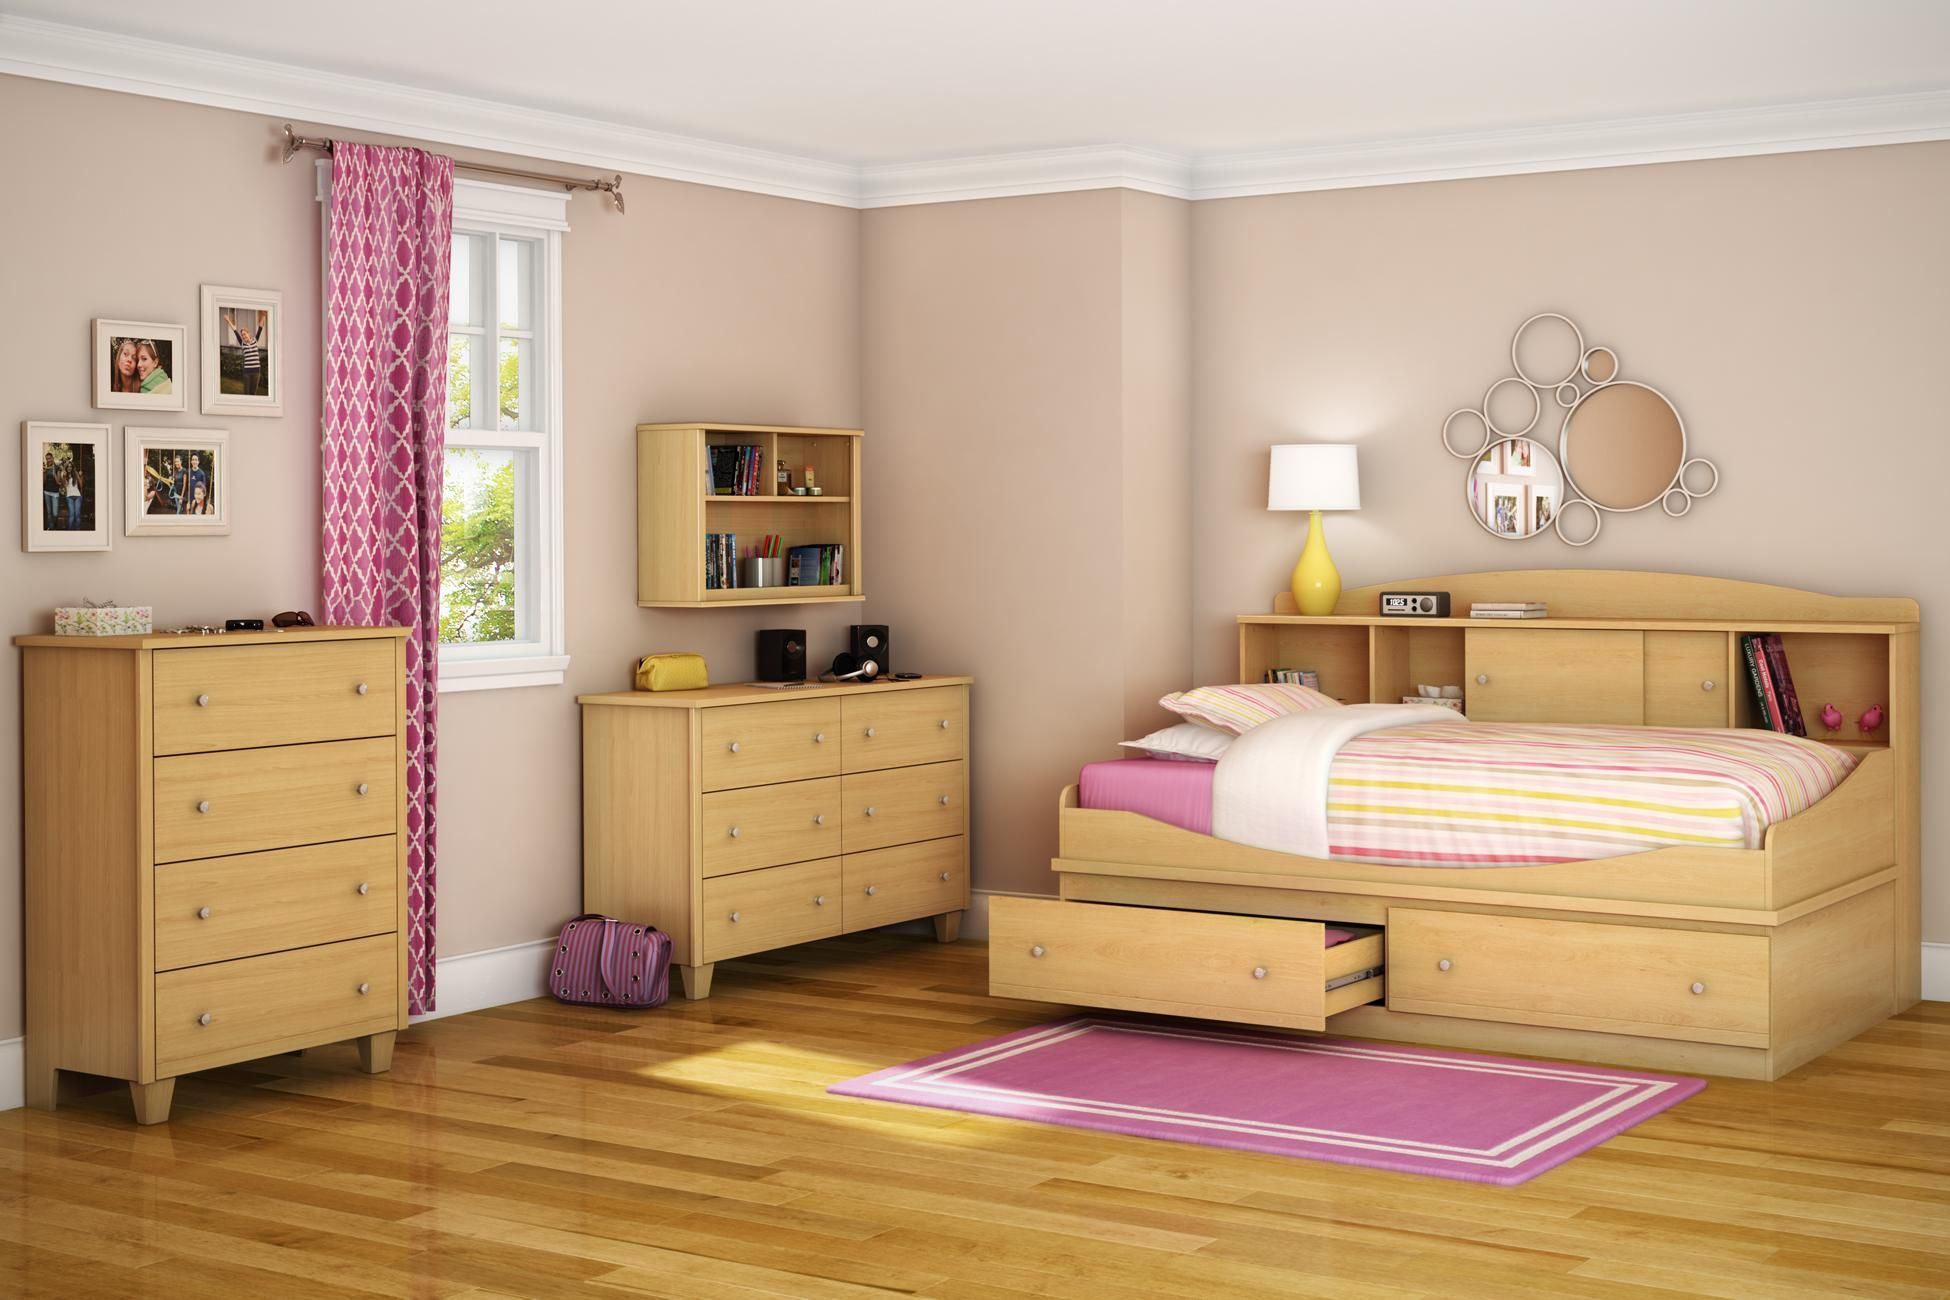 Light brown bedroom furniture - Awesome Twin Bedroom Set With Wooden Bookcase Daybed And Drawers Also Wooden Dresser And Wall Shelf